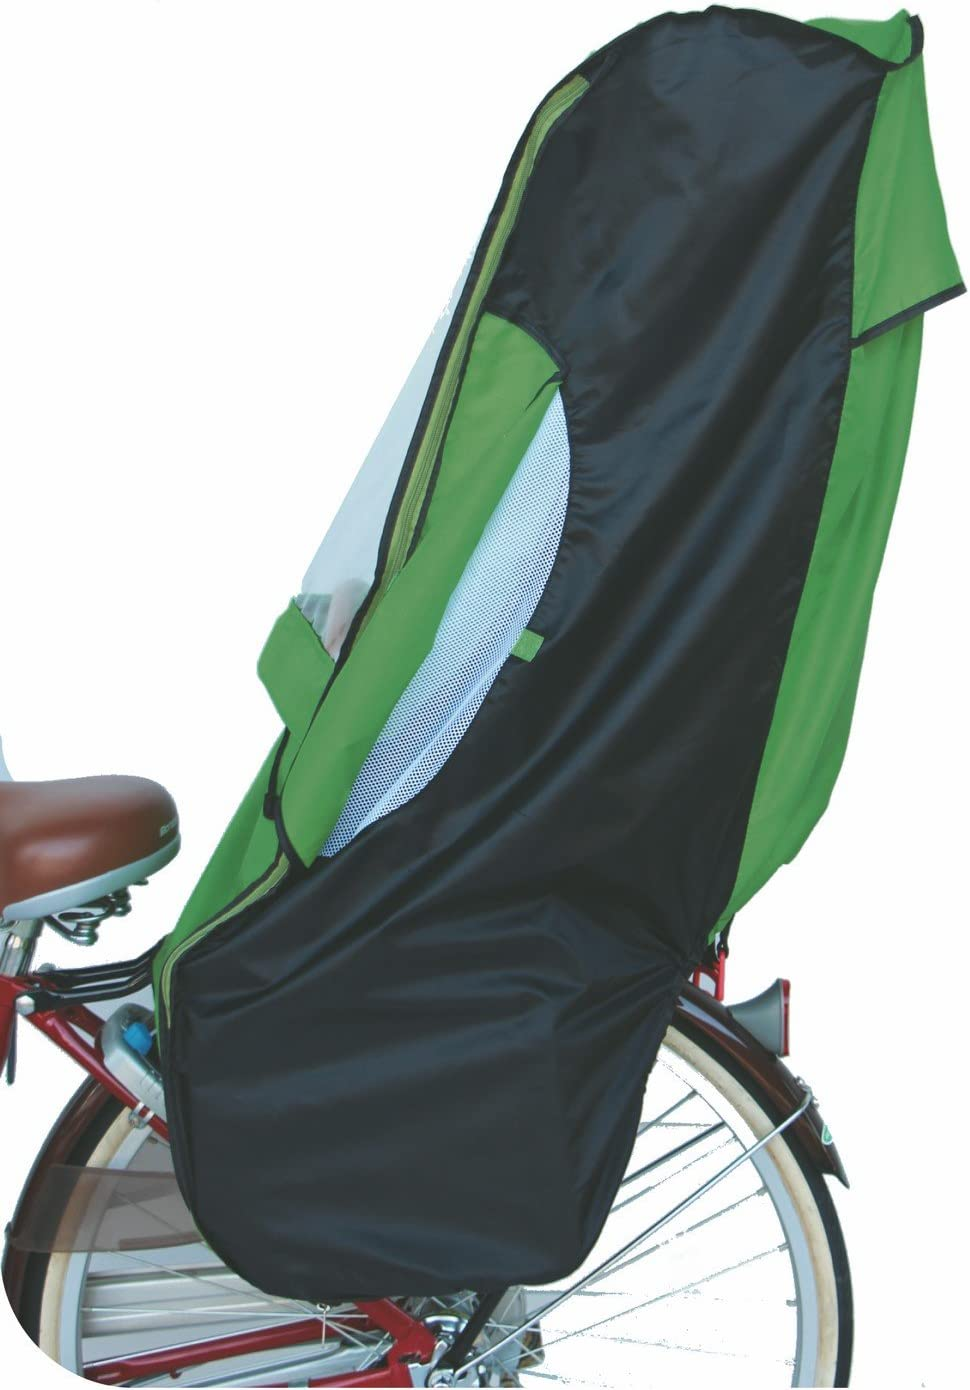 MARUTO Pocktable Rain and Wind Cover for Child Bike Seat